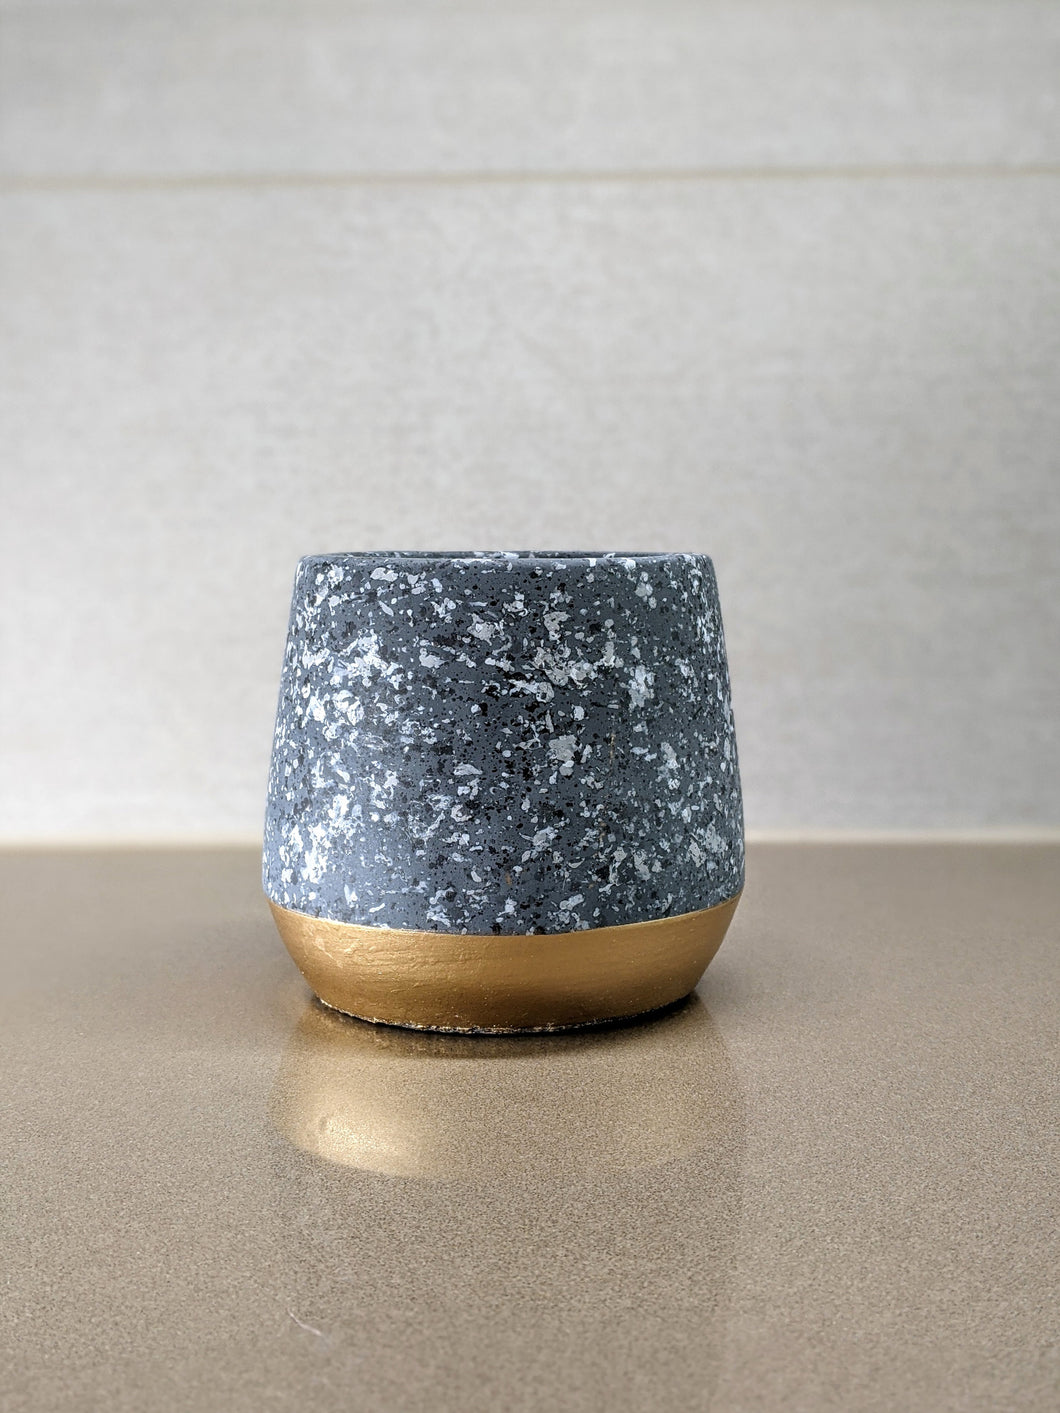 Golden Spliced Cement Pot with Gray Marbling - 4